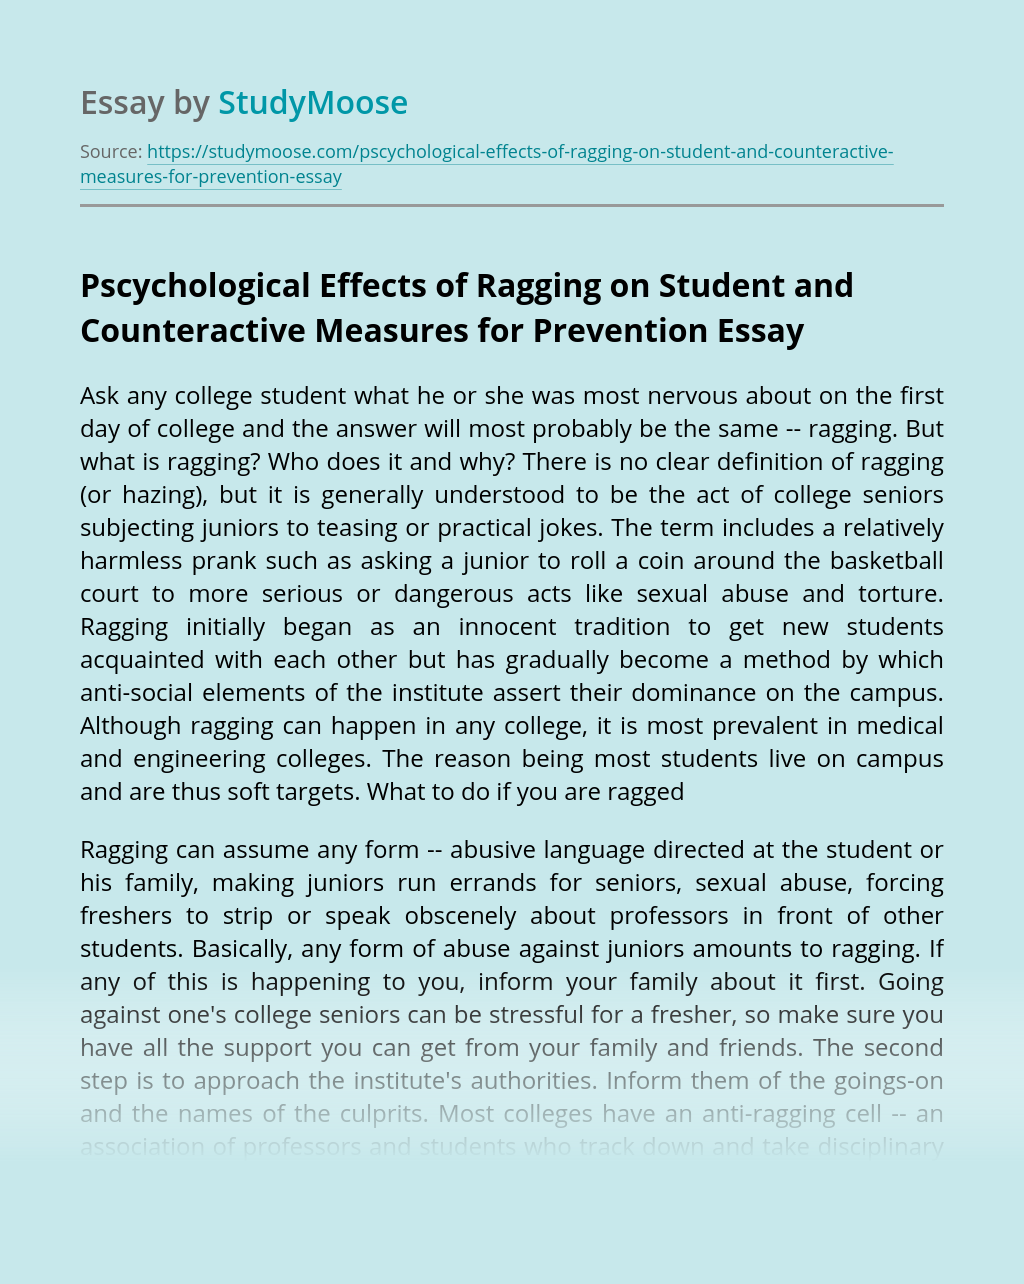 Pscychological Effects of Ragging on Student and Counteractive Measures for Prevention